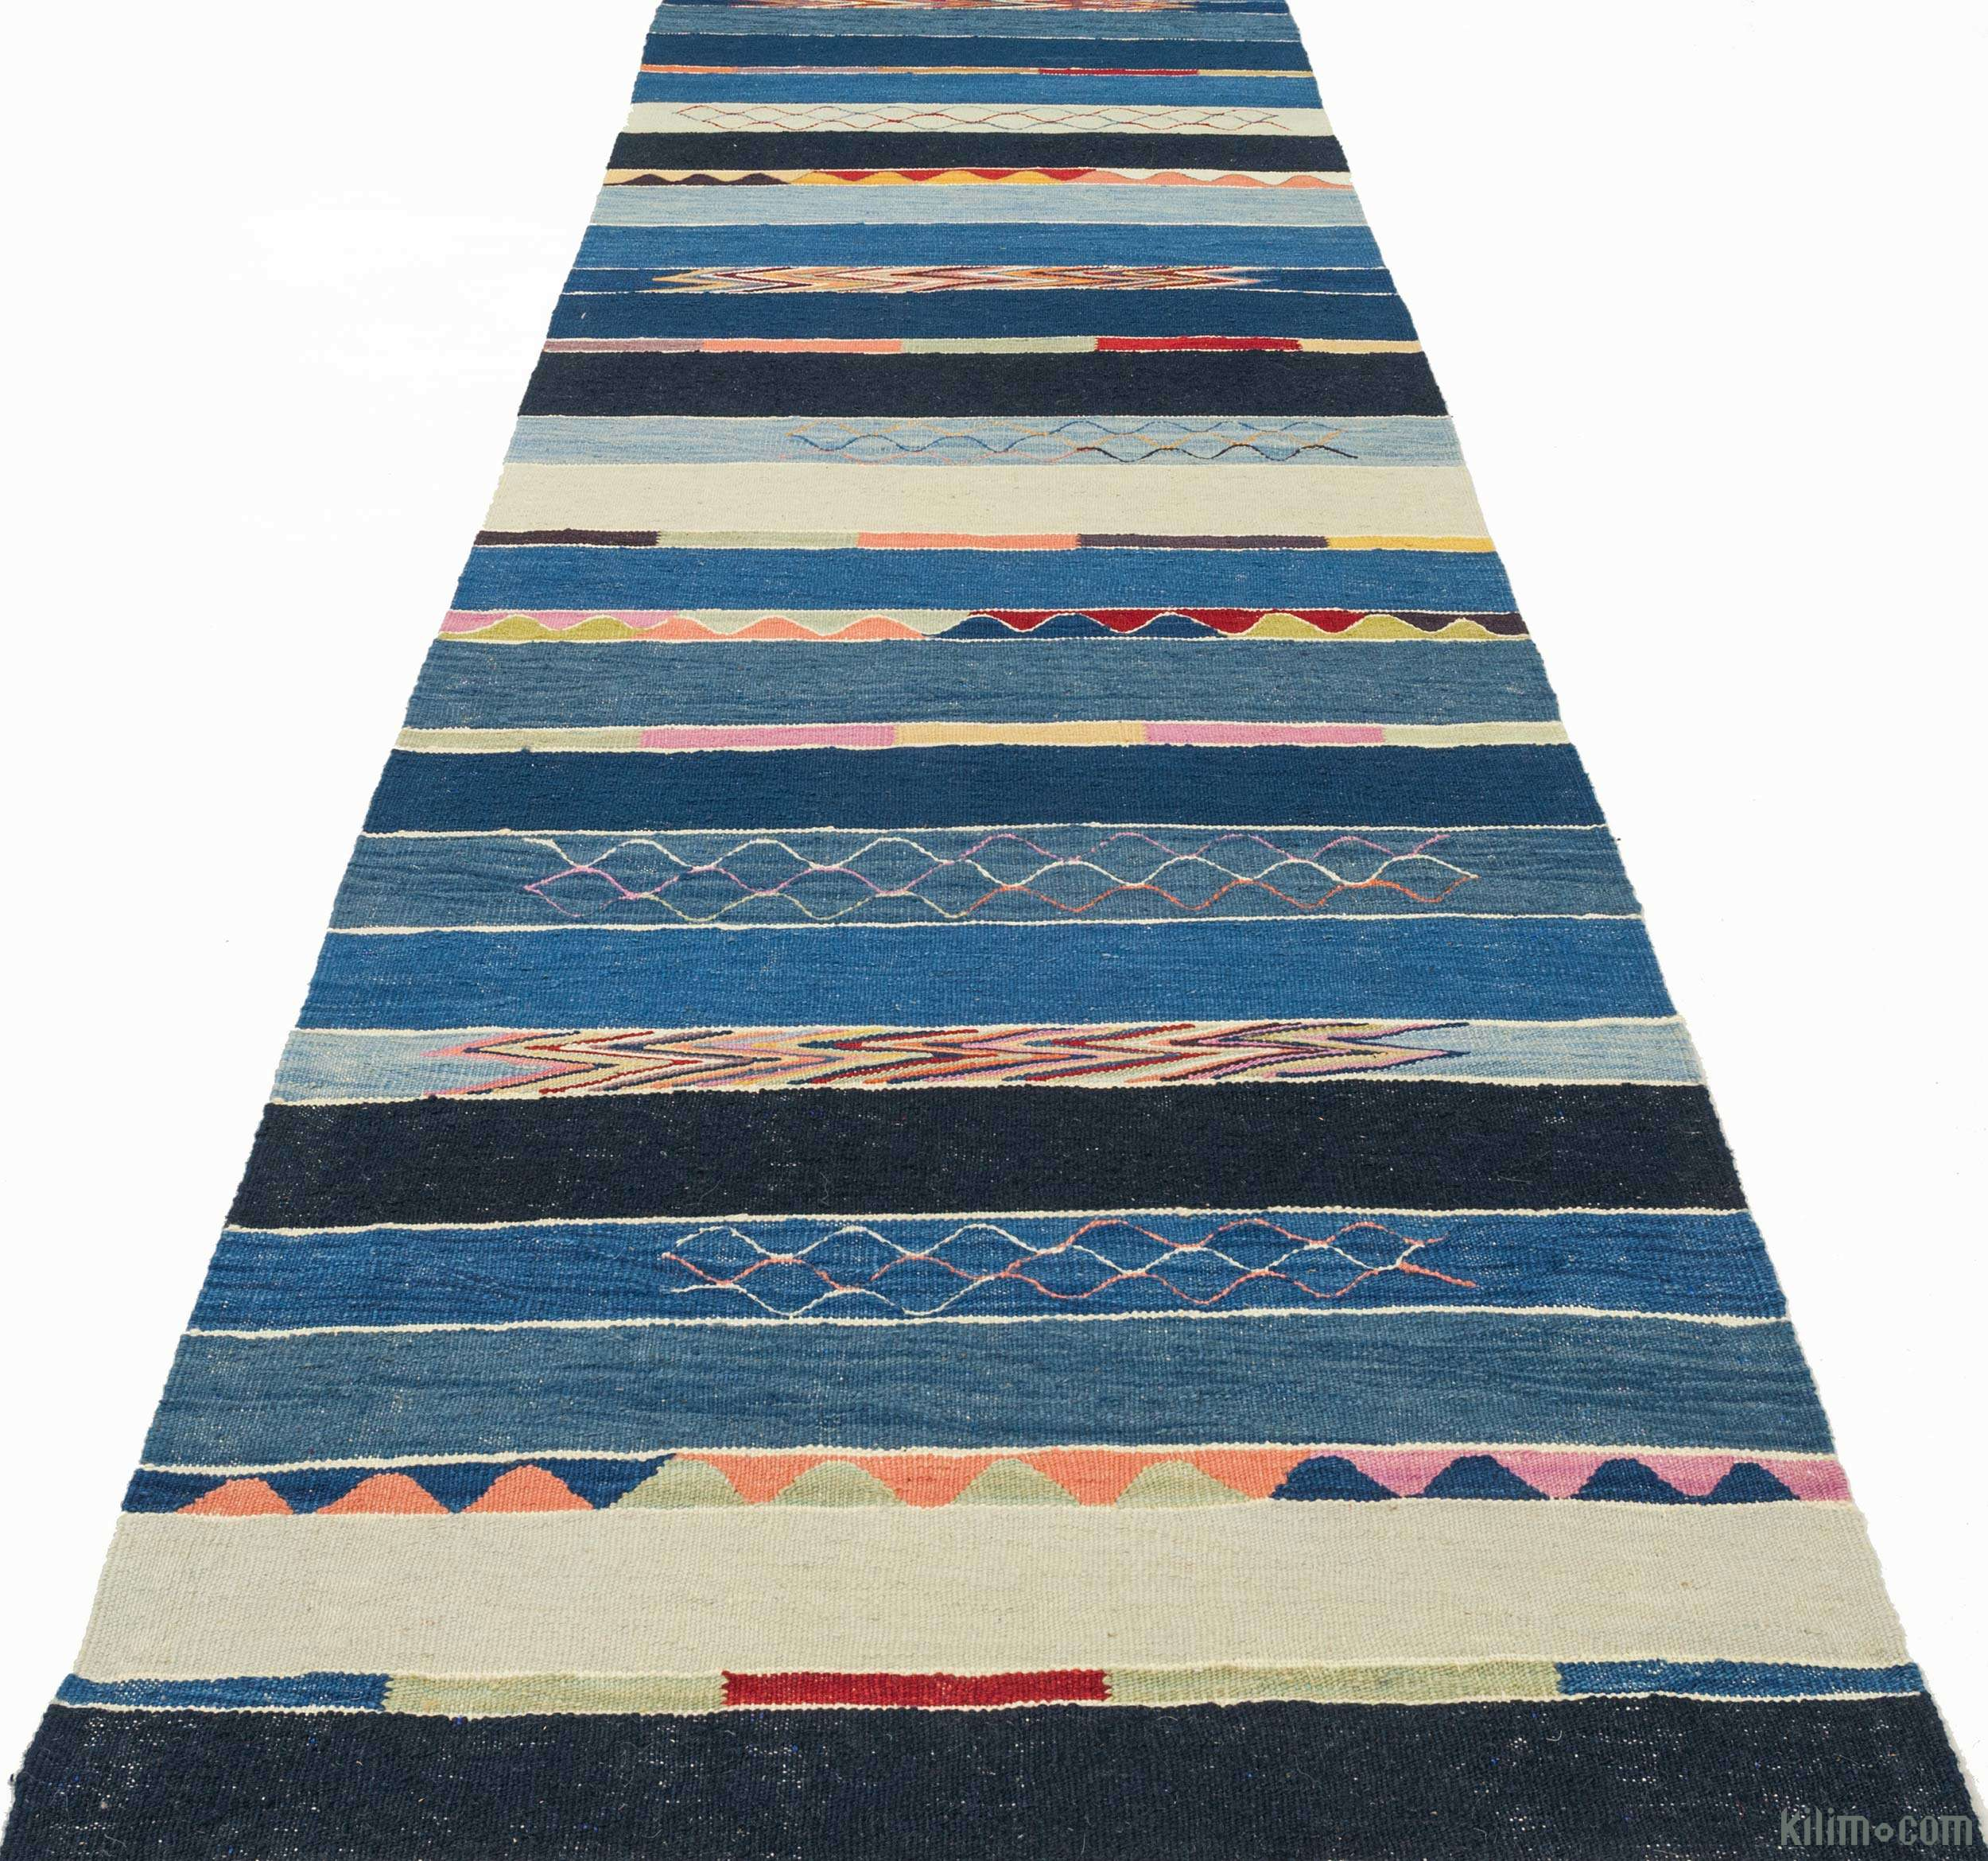 K0010791 Light Blue, Blue New Turkish Kilim Runner Rug